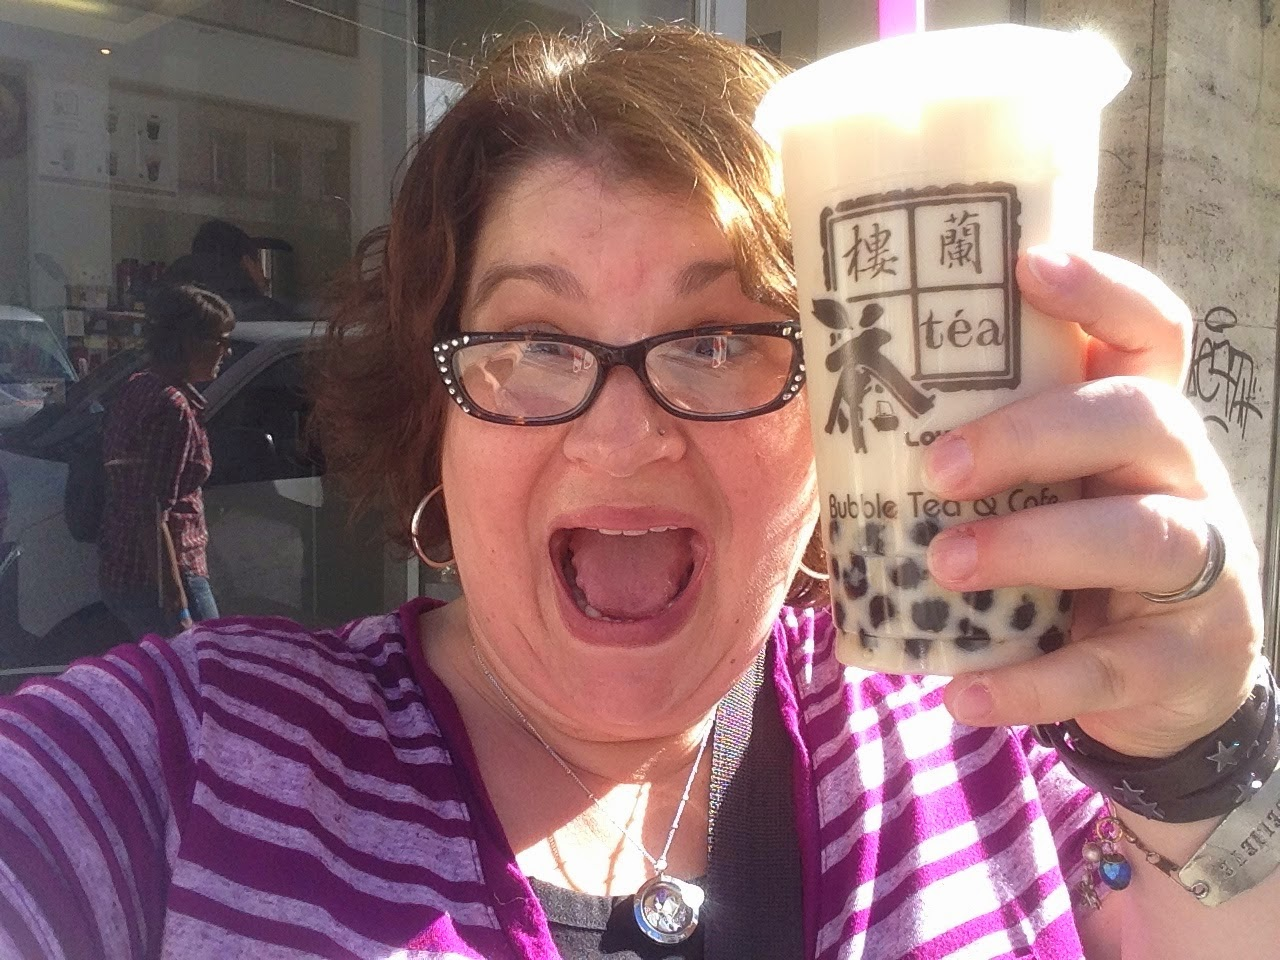 Lou Lan Cha Bubble Tea in Munich Germany 2014